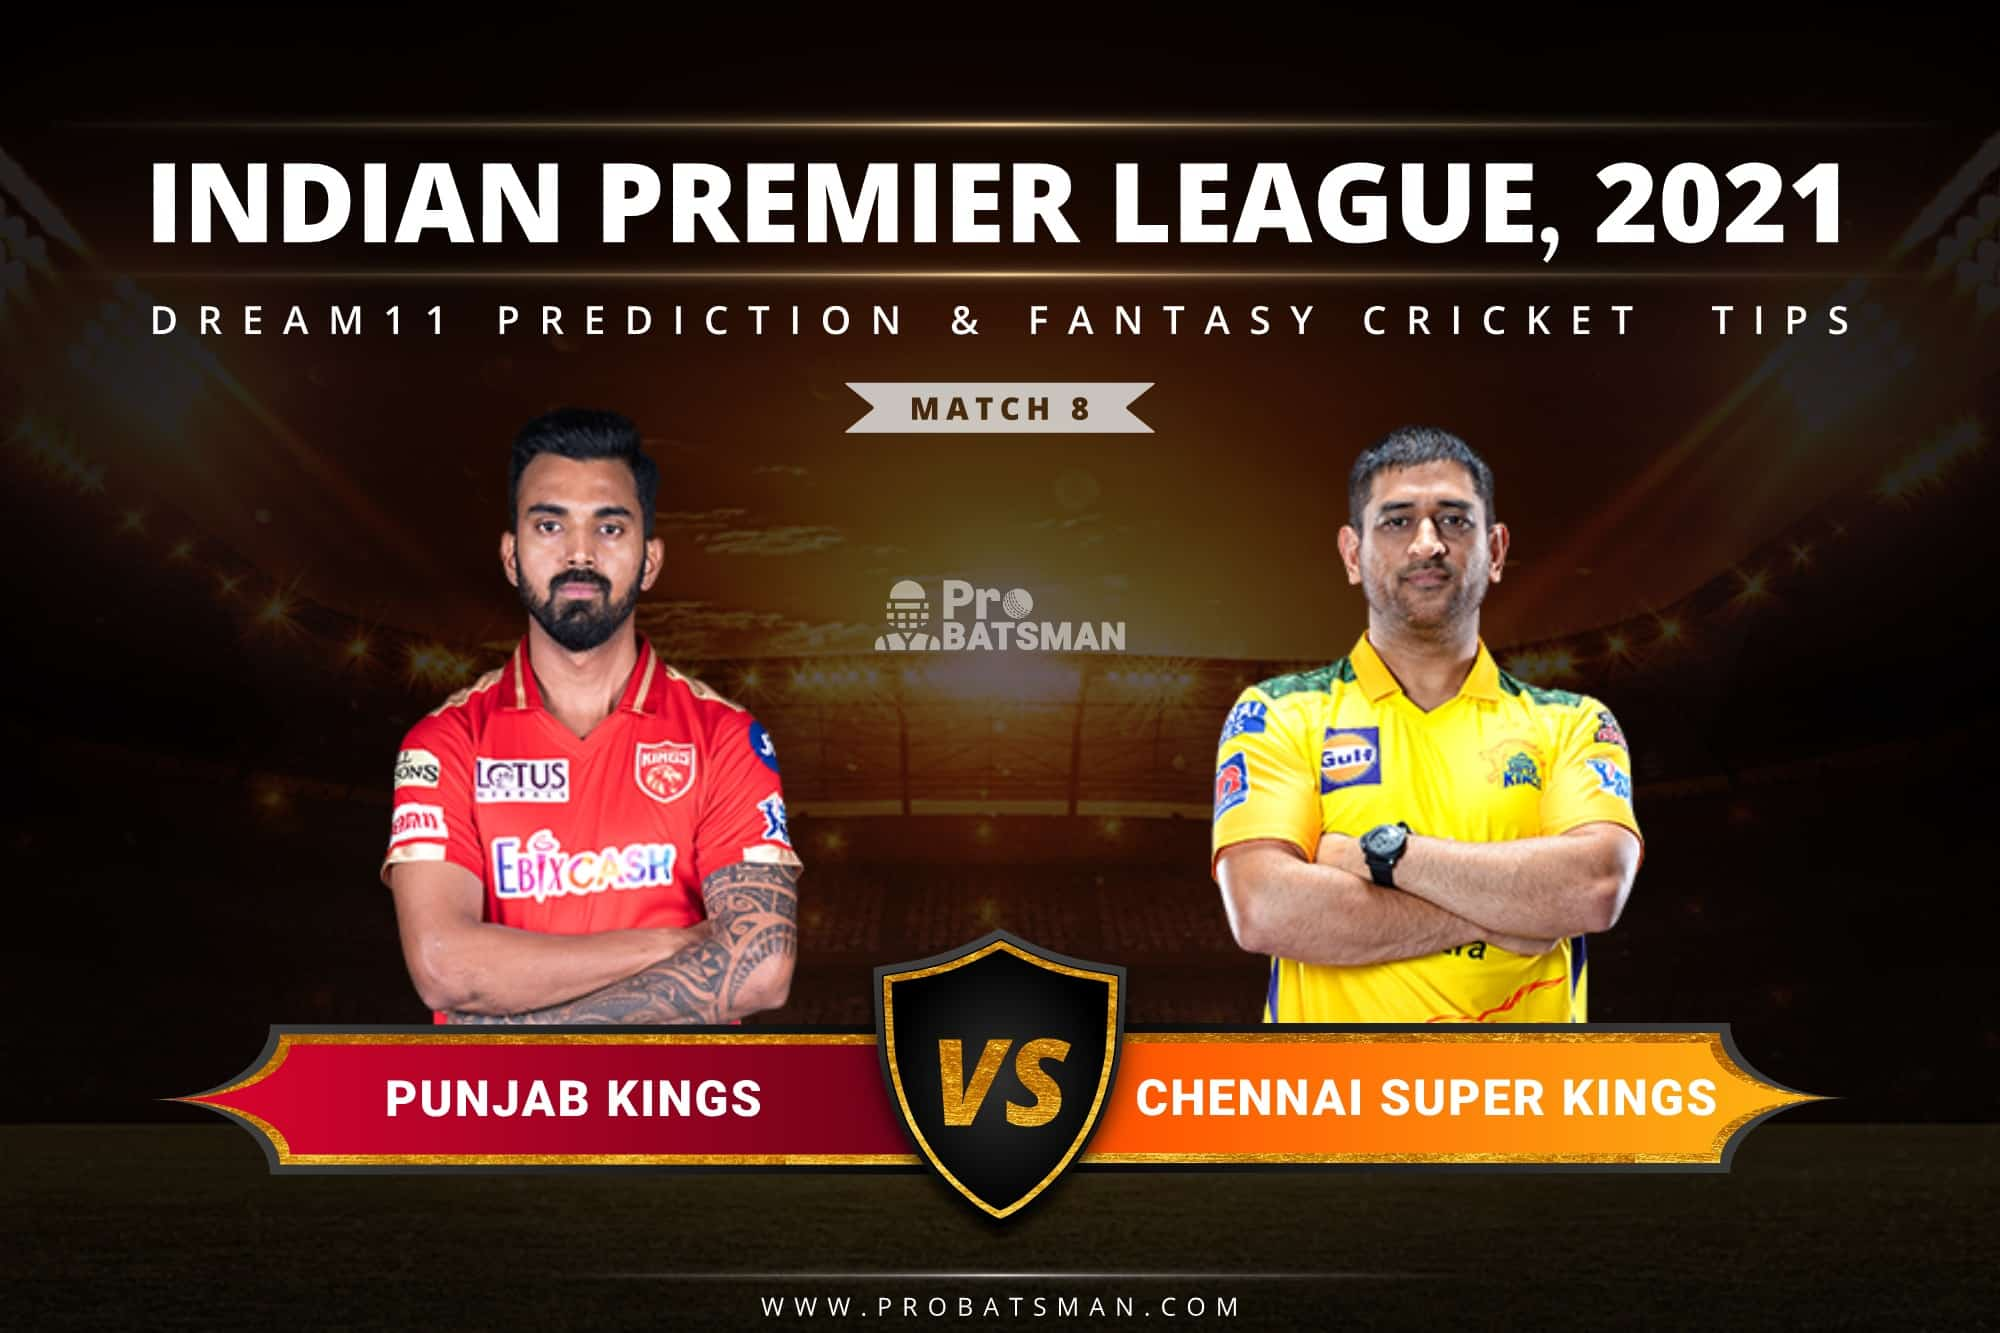 PBKS vs CSK Dream11 Prediction: Fantasy Cricket Tips, Playing XI, Pitch Report, Stats & Injury Updates of Match 8, IPL 2021